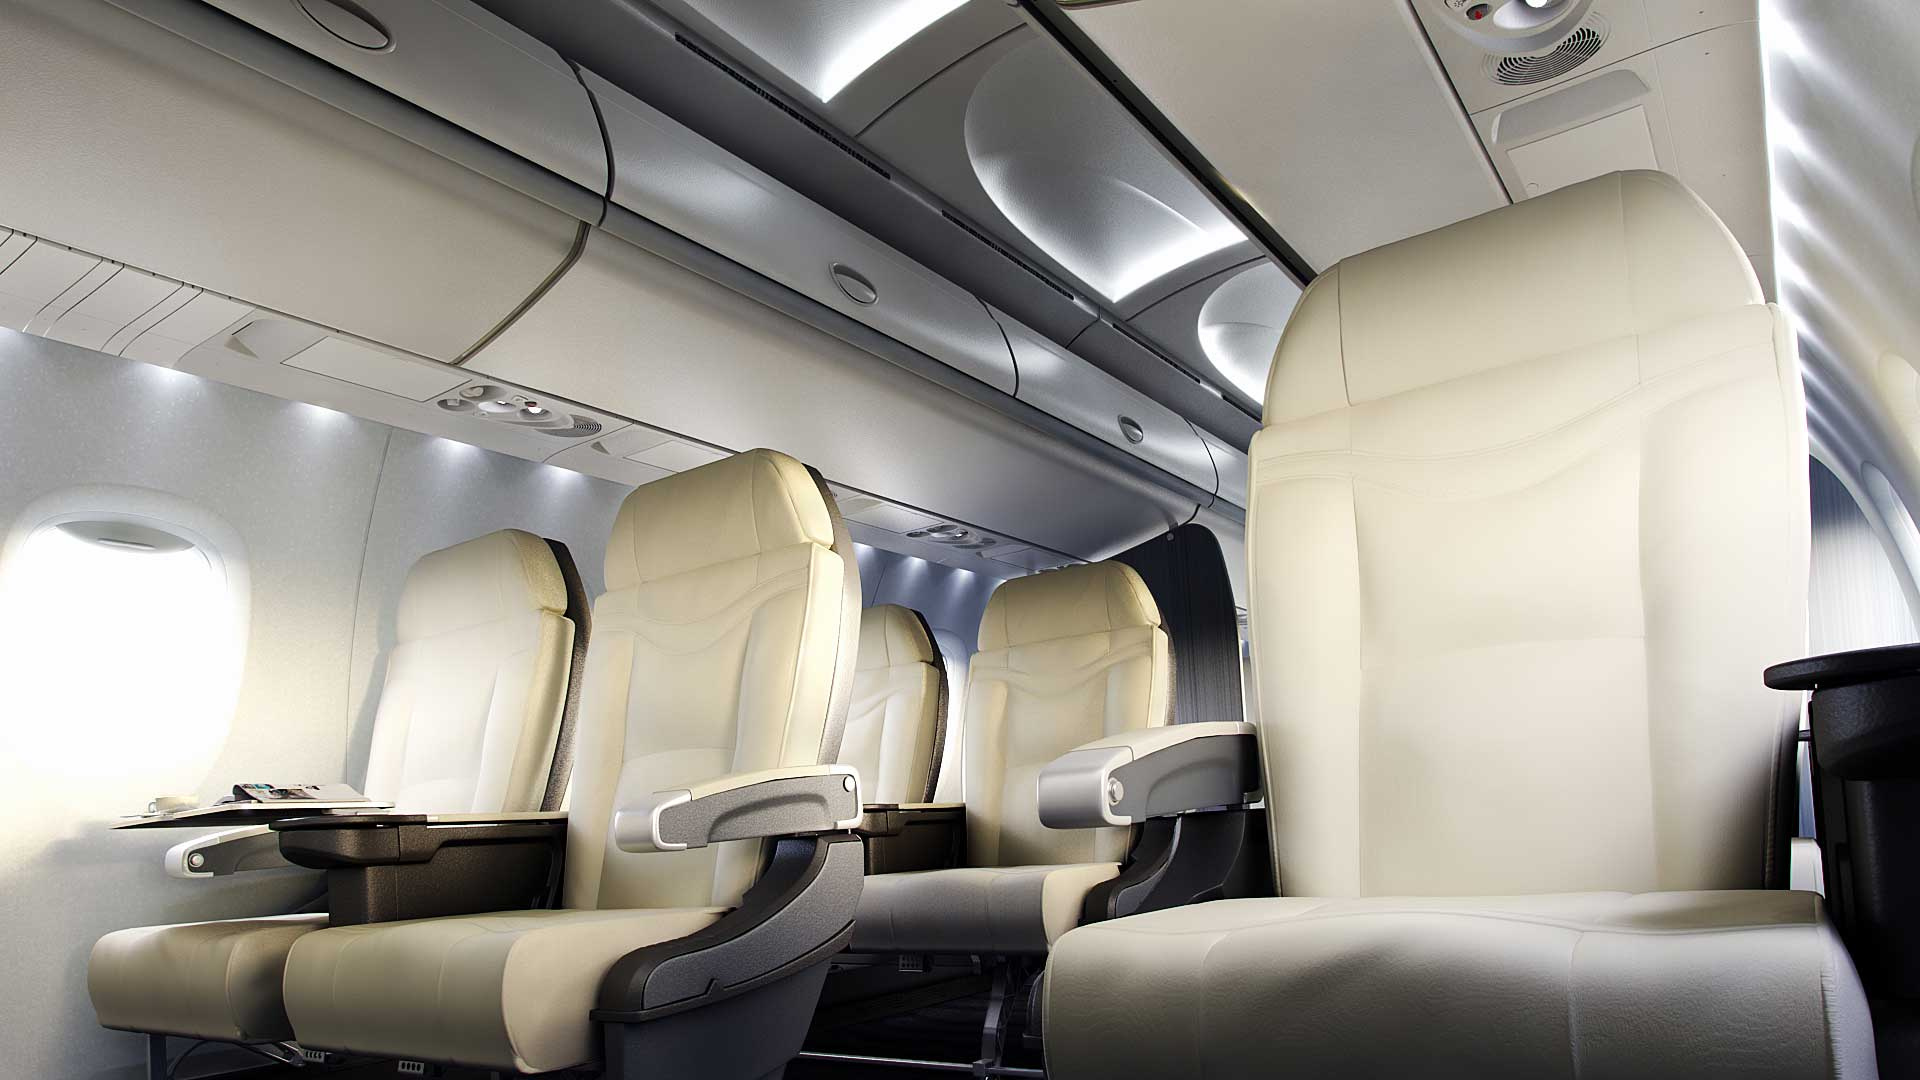 Class-leading height and width contribute to the bright and airy surroundings. Slim-seat design increases legroom without compromising comfort while the widest economy-class seats and larger overhead bins complete the package for a big-jet feel.